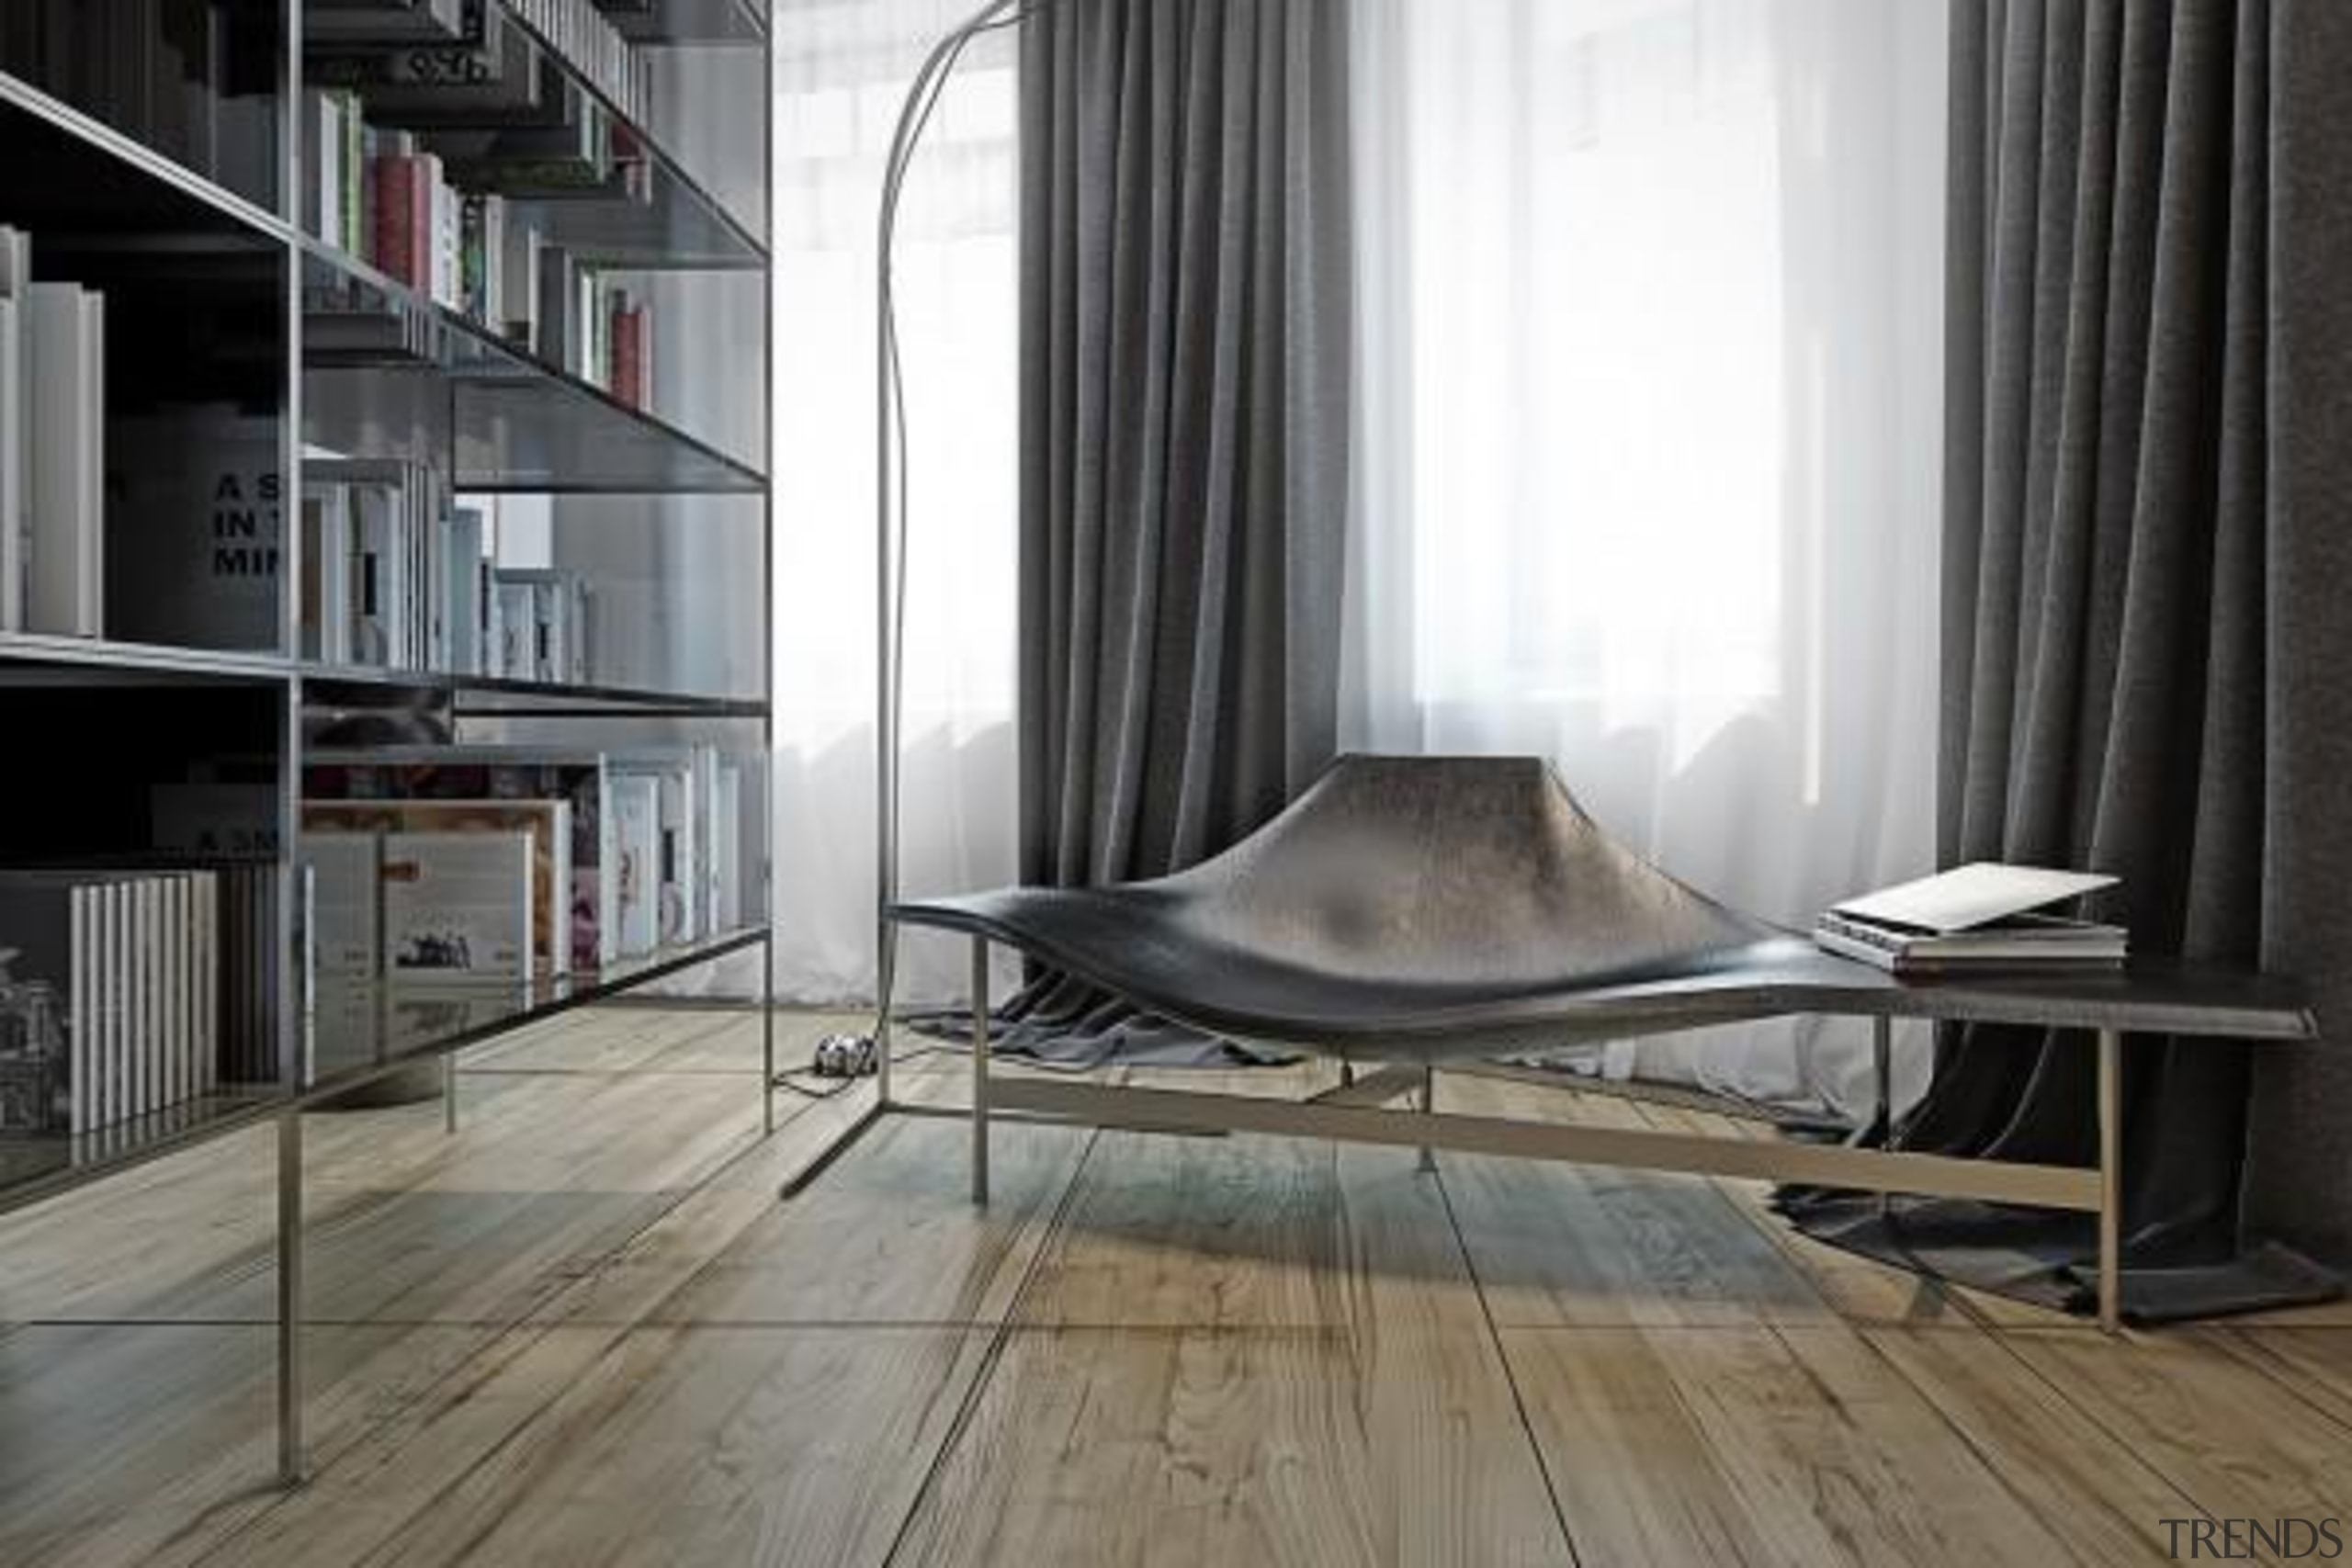 creative chair leather - Masculine Apartments - architecture architecture, chair, floor, flooring, furniture, interior design, product design, window, wood, gray, black